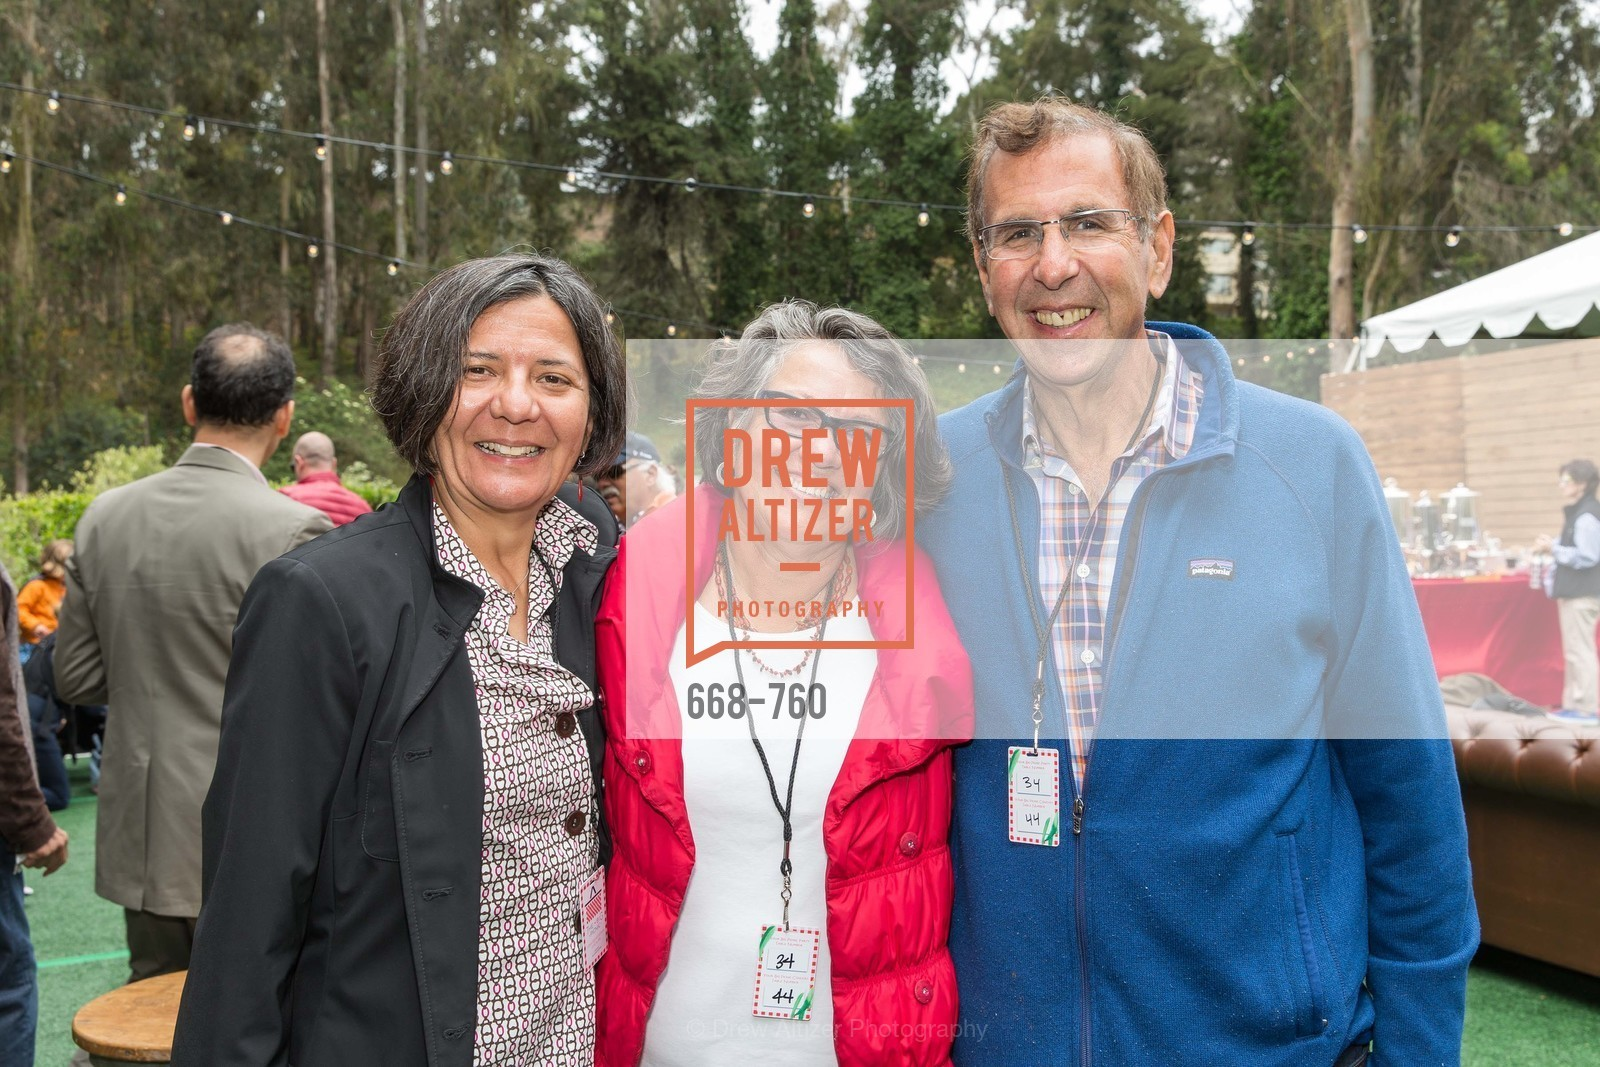 Sandra R. Hernandez, Viviana Paredes, Bob Friedman, The Big Picnic! A Benefit & Concert for STERN GROVE FESTIVAL, US, June 14th, 2015,Drew Altizer, Drew Altizer Photography, full-service agency, private events, San Francisco photographer, photographer california